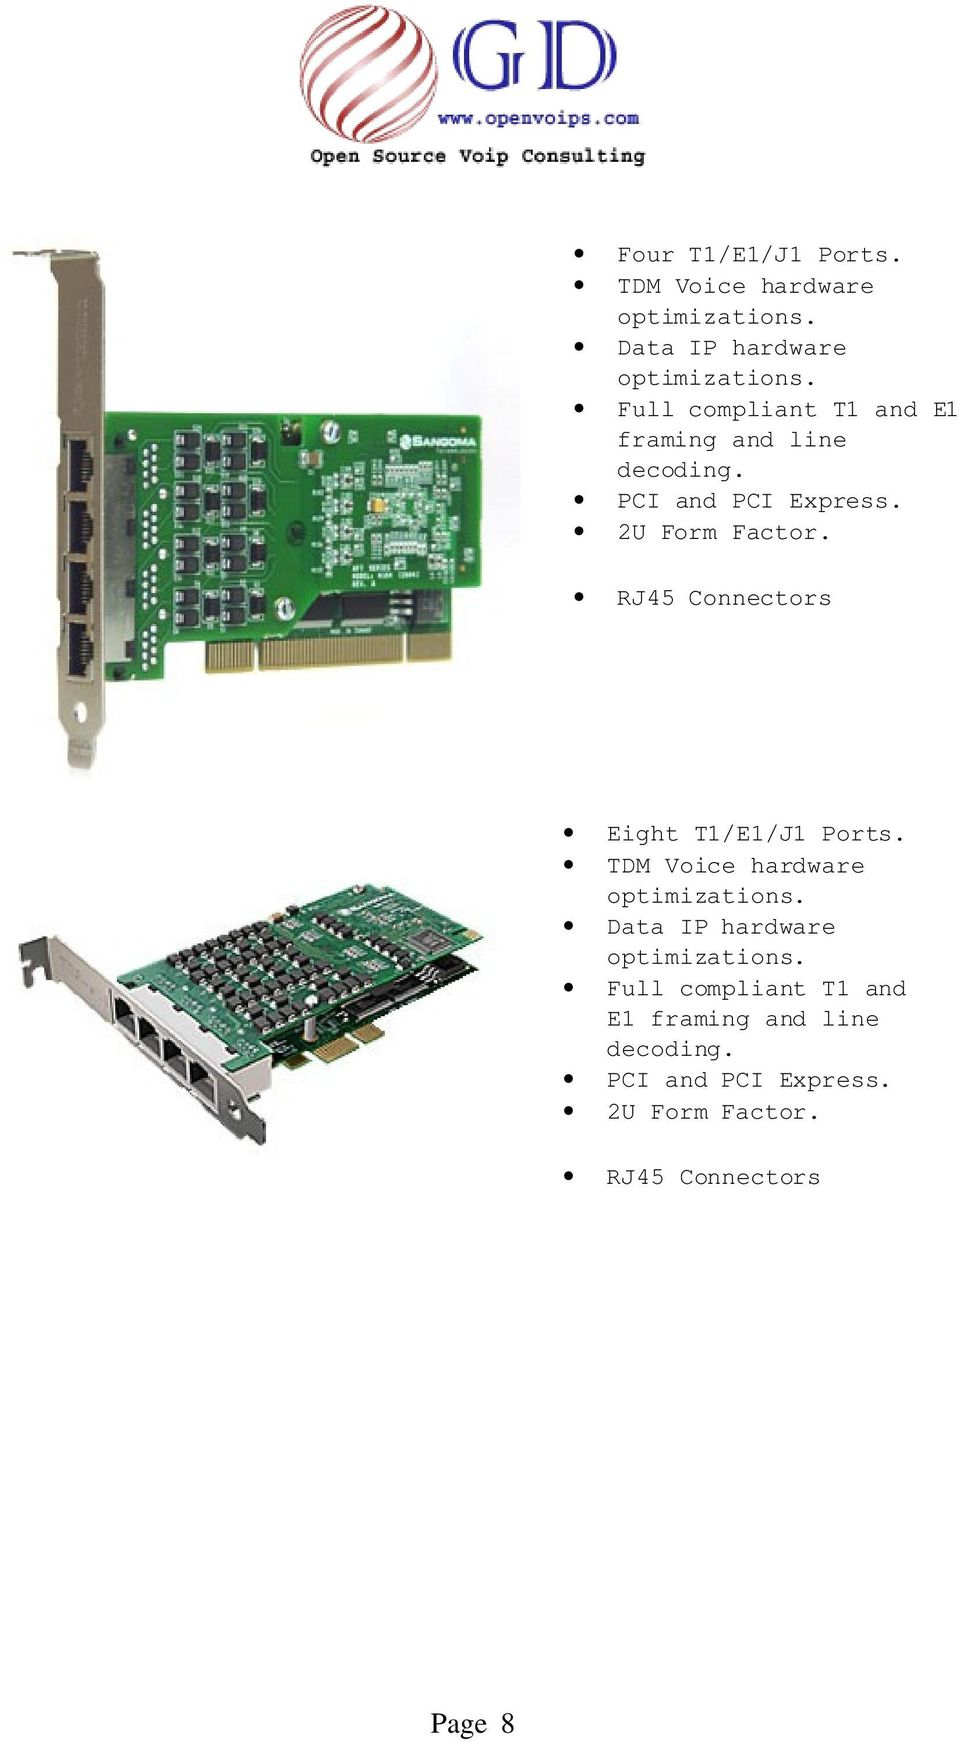 decoding. PCI and PCI Express. 2U Form Factor.